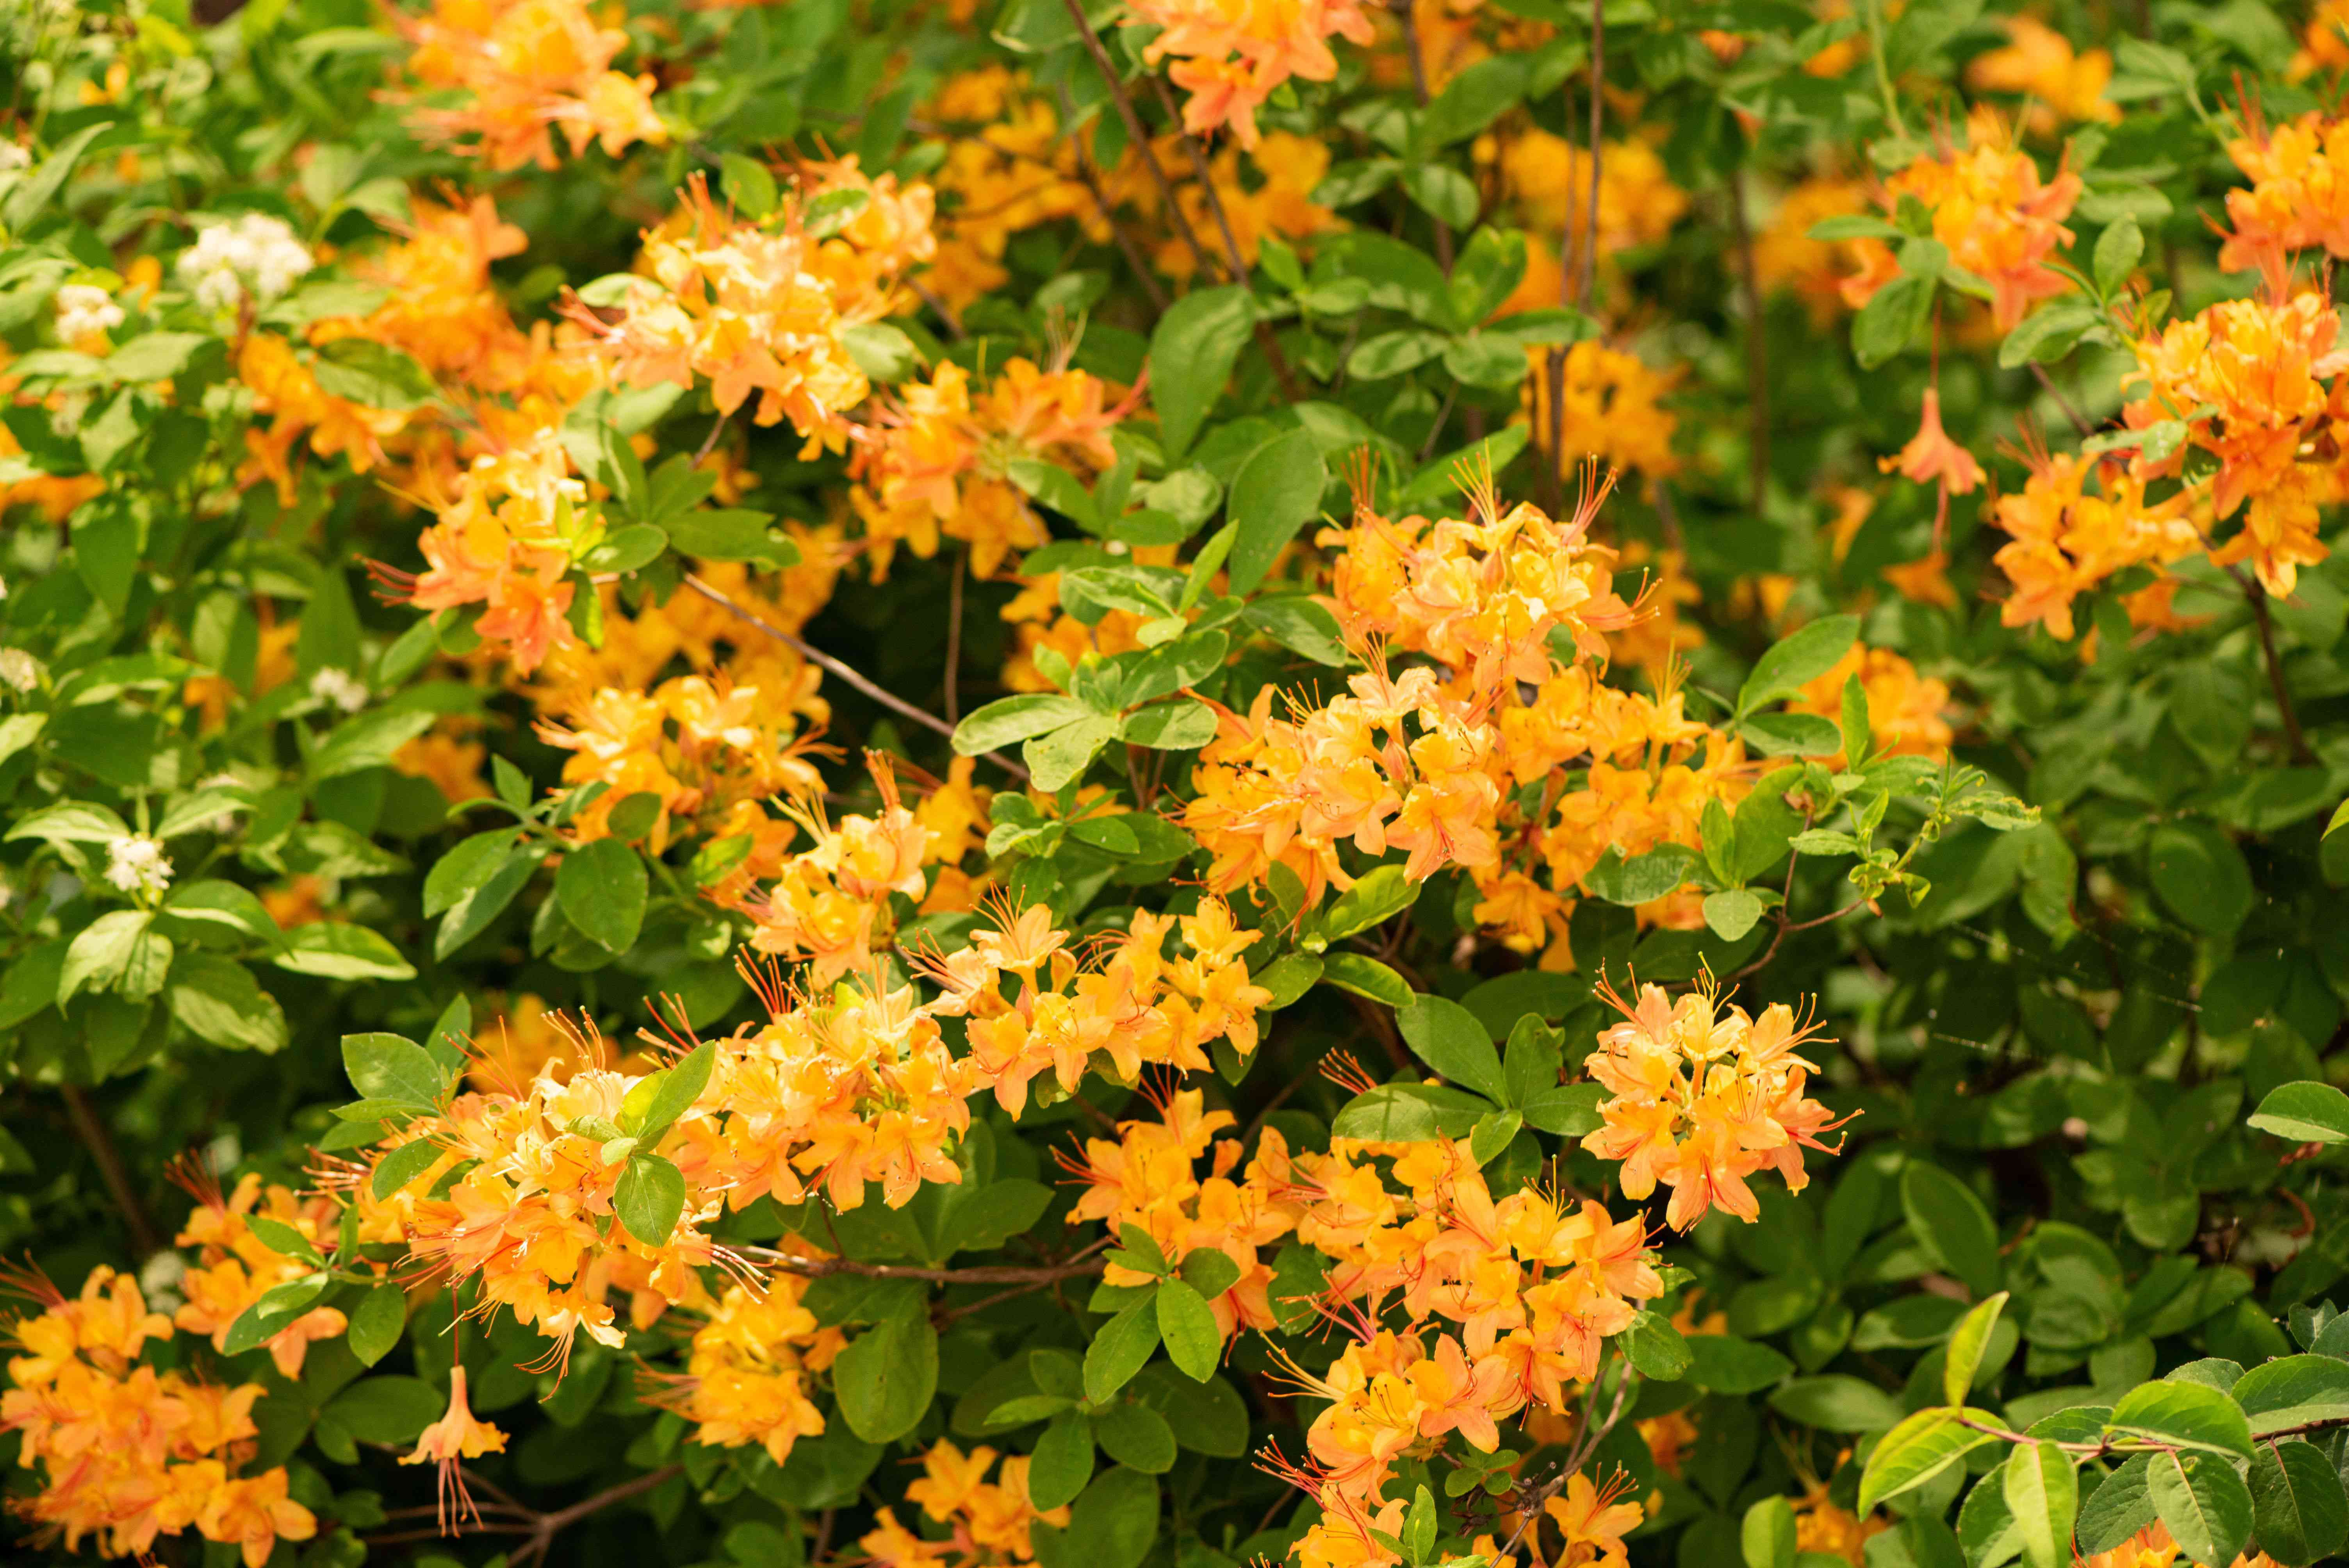 Golden oriole azalea bush with small orange flowers clustered on branches with leaves